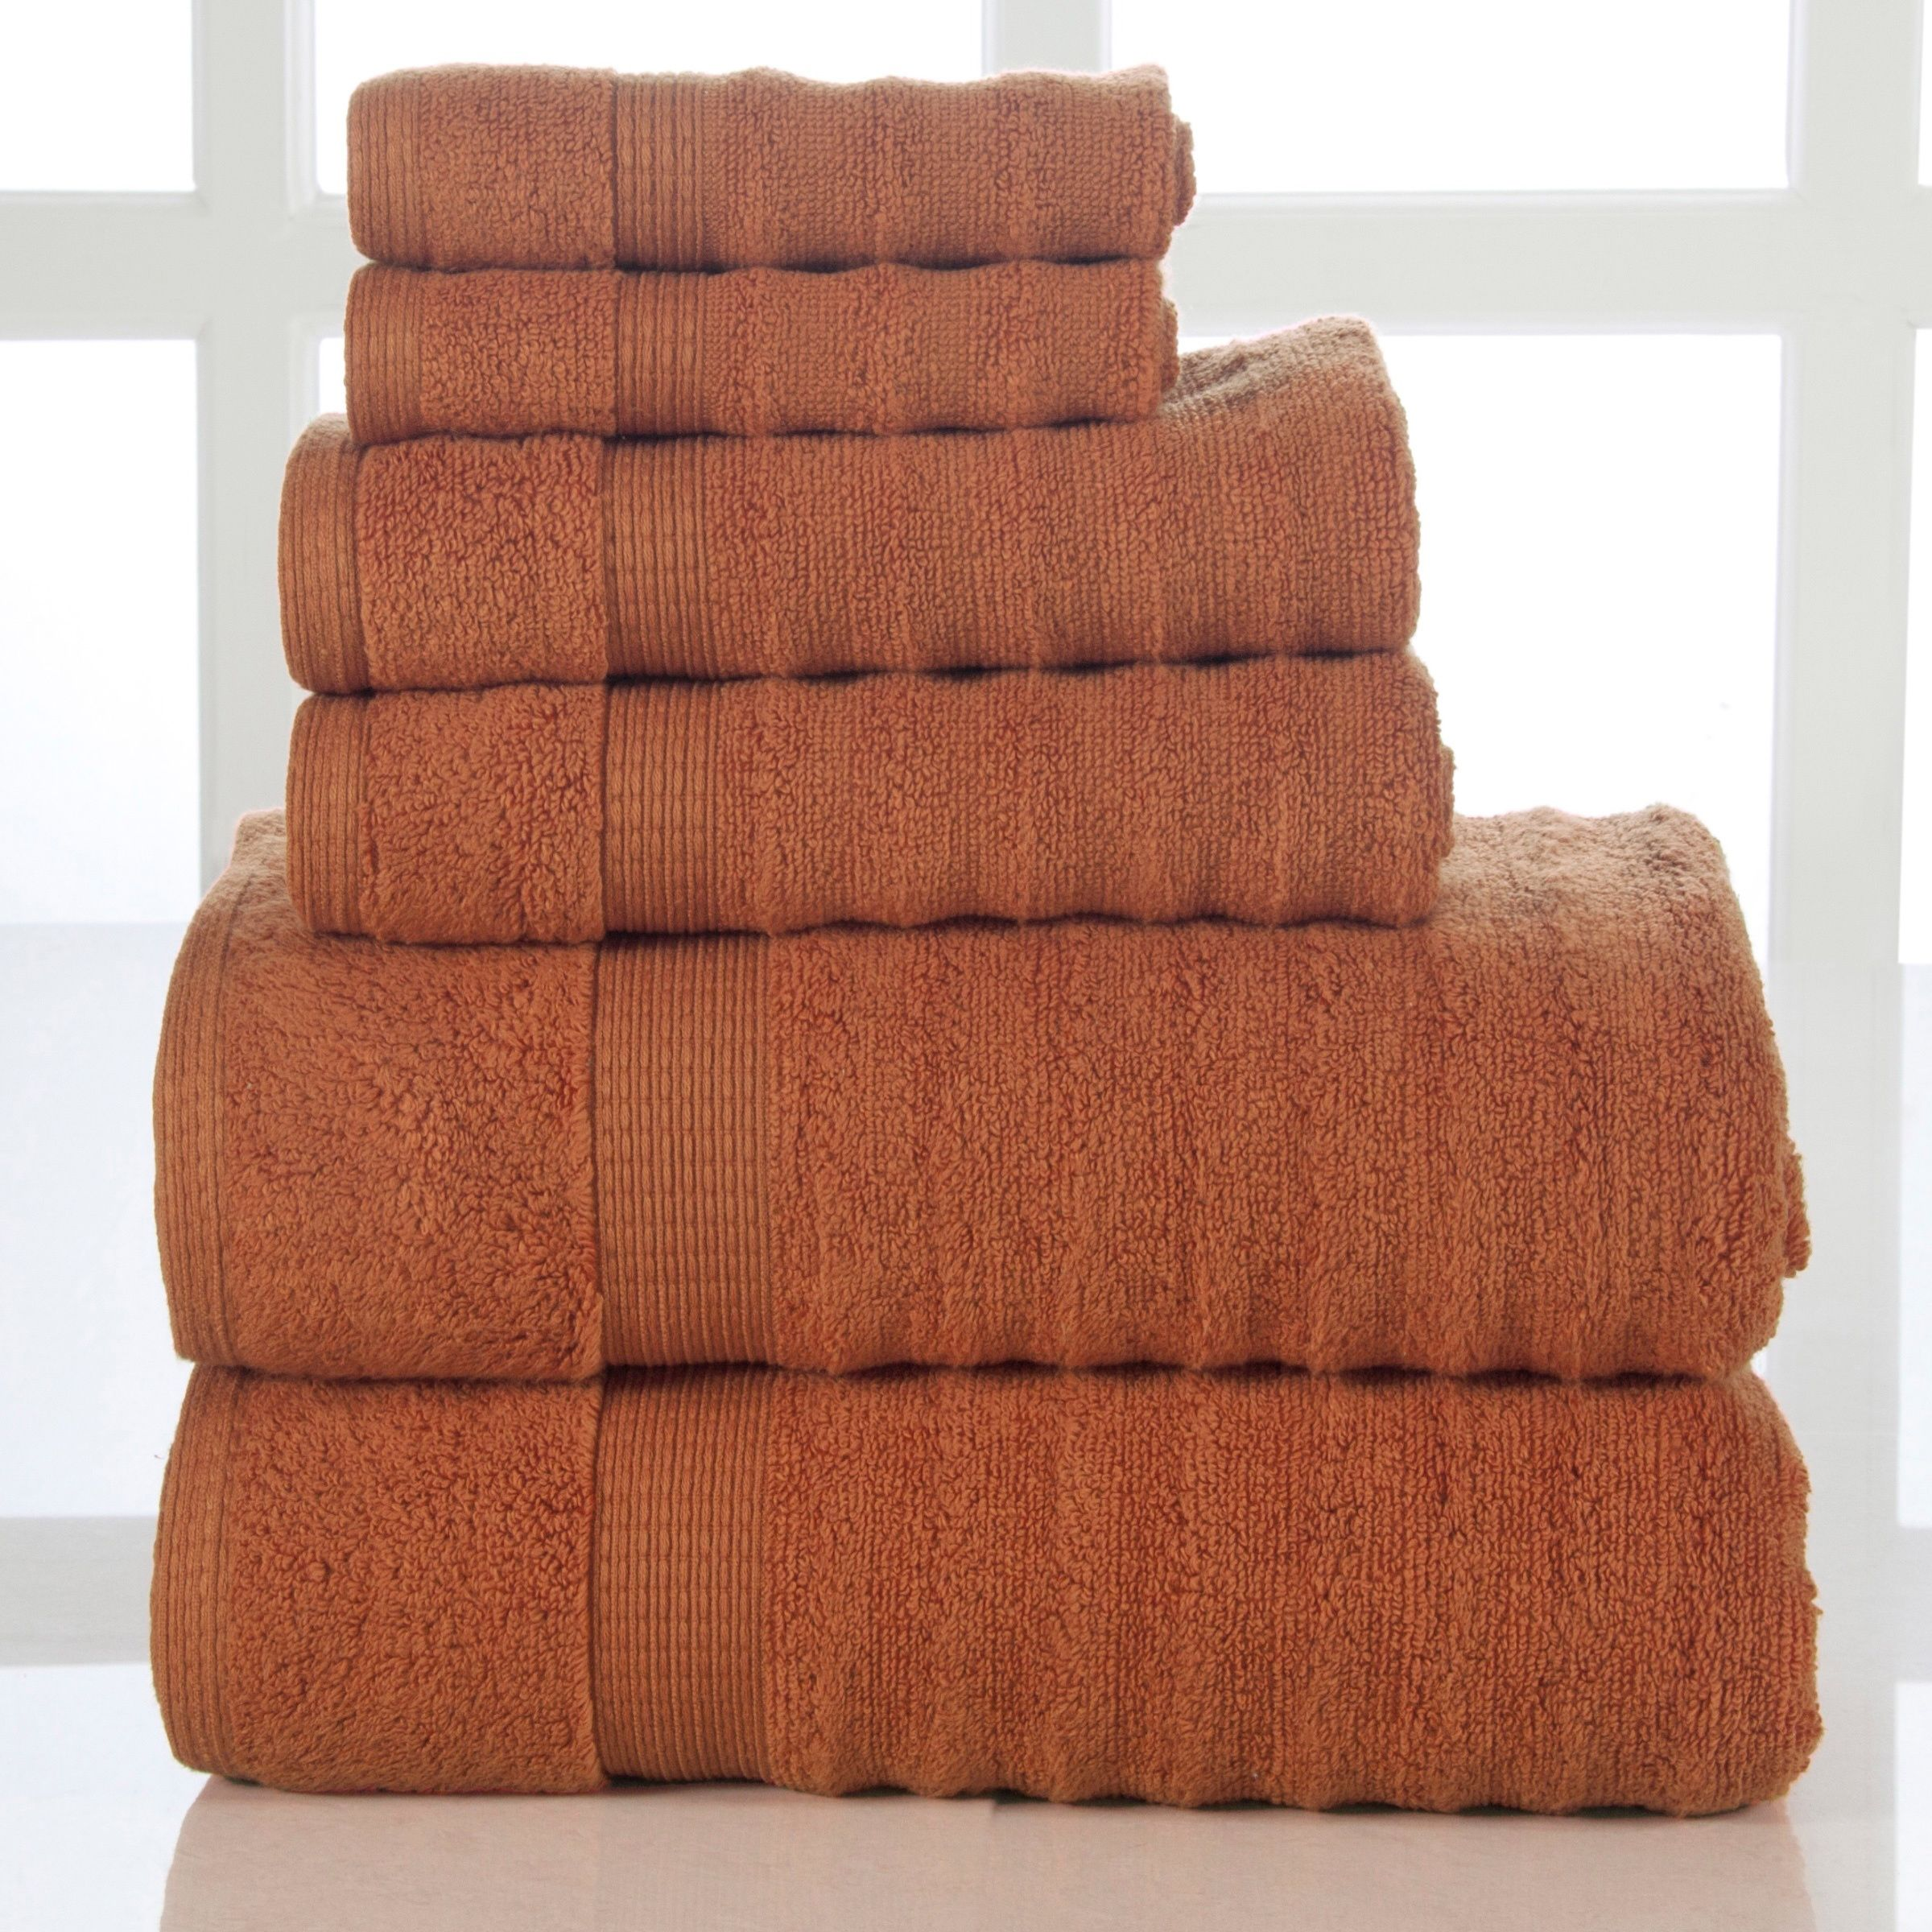 A great addition to any bathroom, this bath towel collection feels extremely soft against your skin. The towels are absorbent and durable for years of use. They are available in an array of color options.